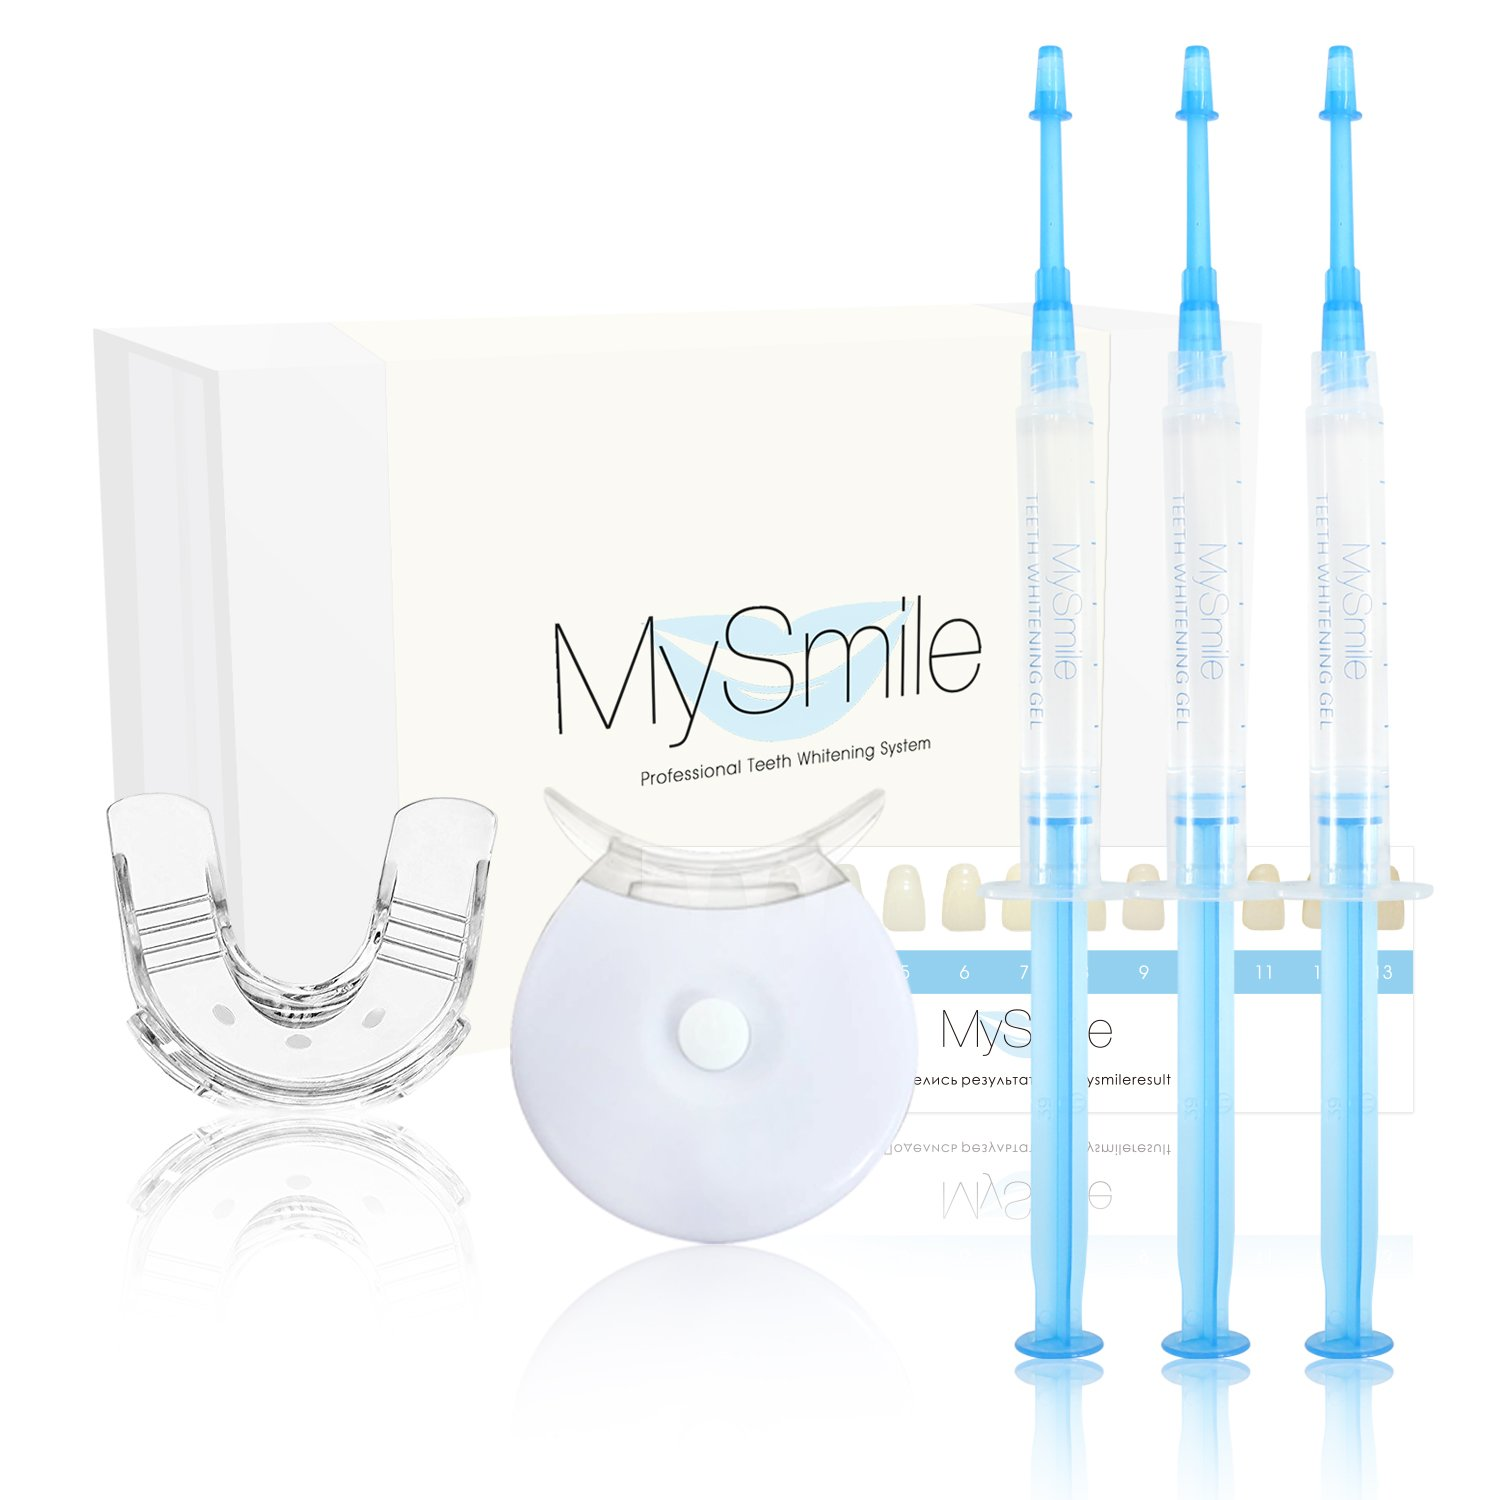 MySmile Teeth Whitening Kit, 10 Mins Express Result, Stain Remover Non Sensitive, Led Accelerator Light, 18% Carbamide Peroxide 3ml Pro Gel, Mouth Tray